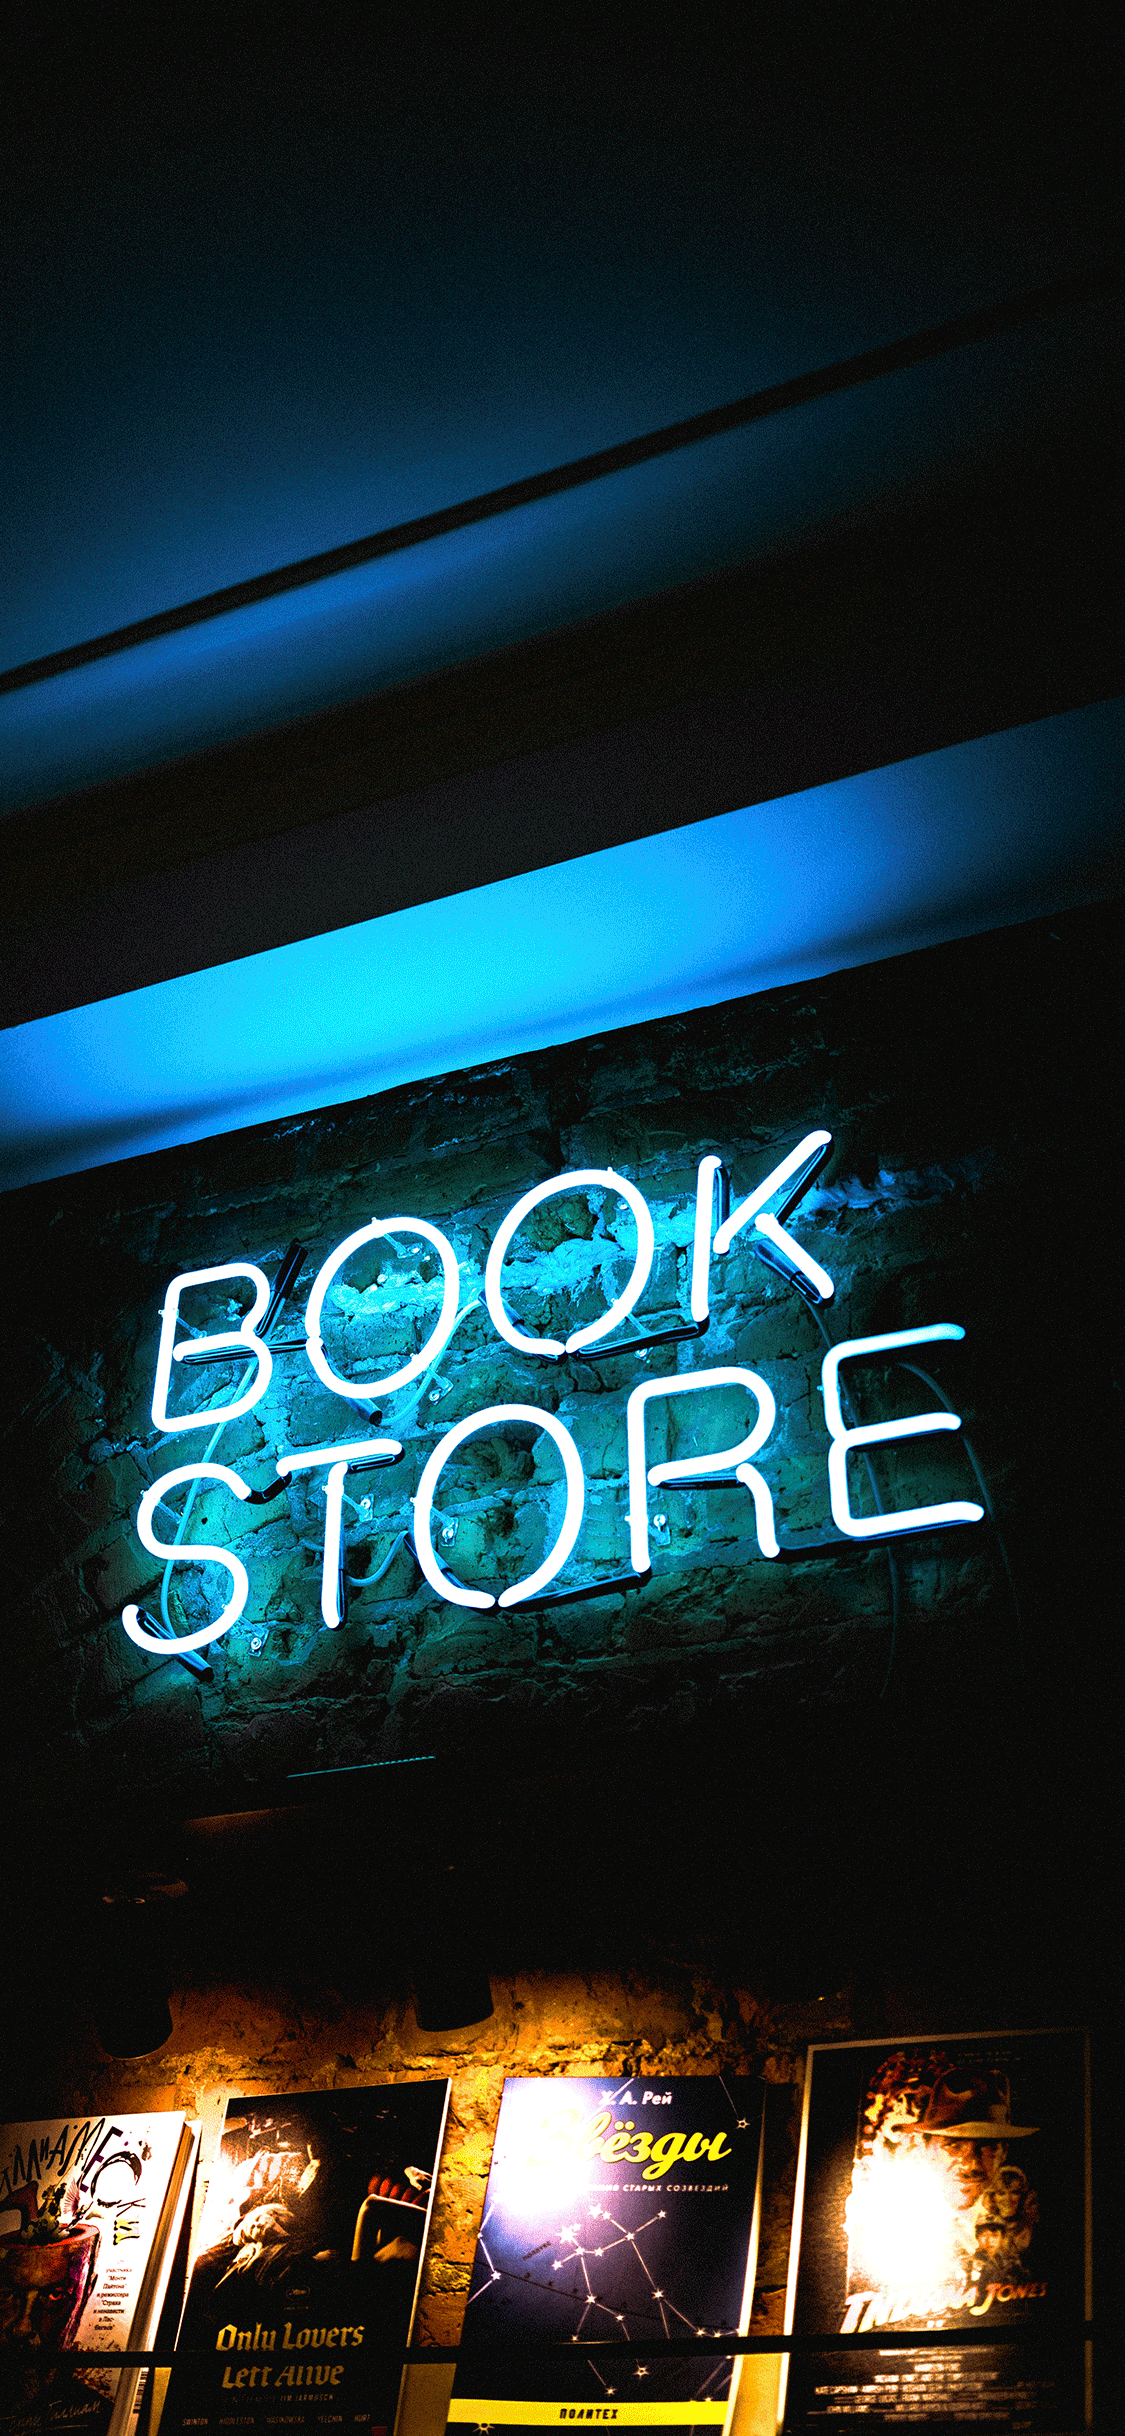 iPhone wallpaper neon sign book store Fonds d'écran iPhone du 19/10/2018